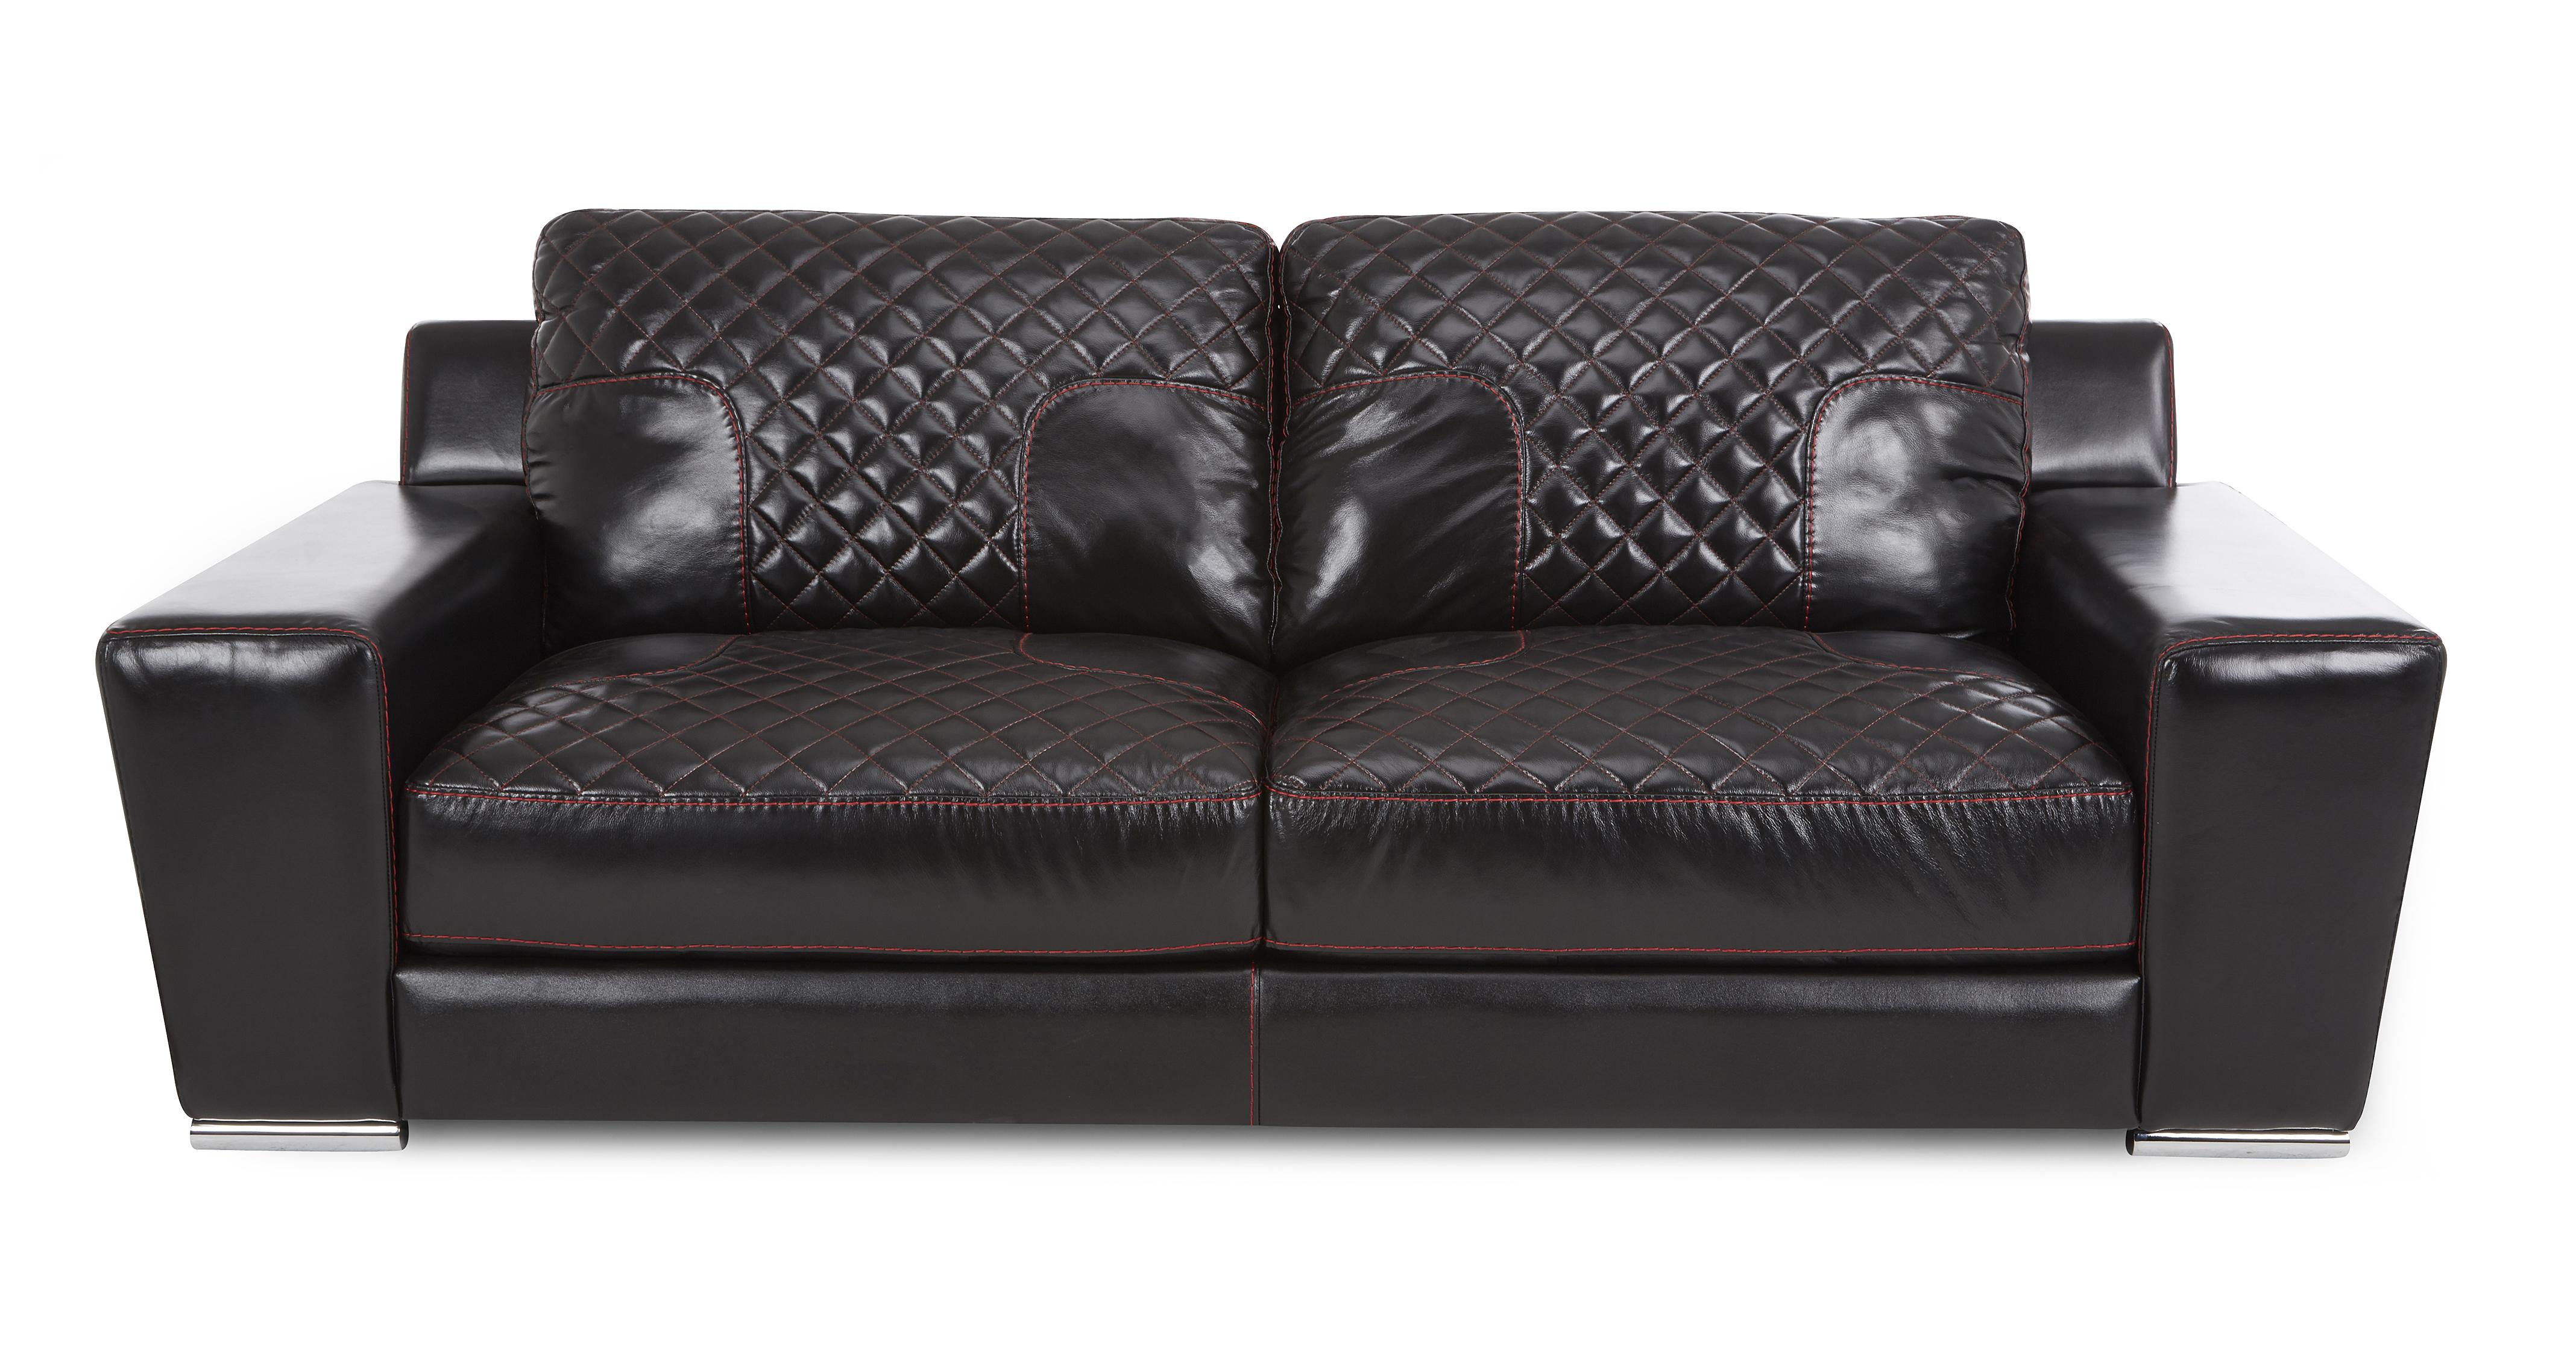 2 seater leather sofas at dfs hd sofa mansa set 3 black